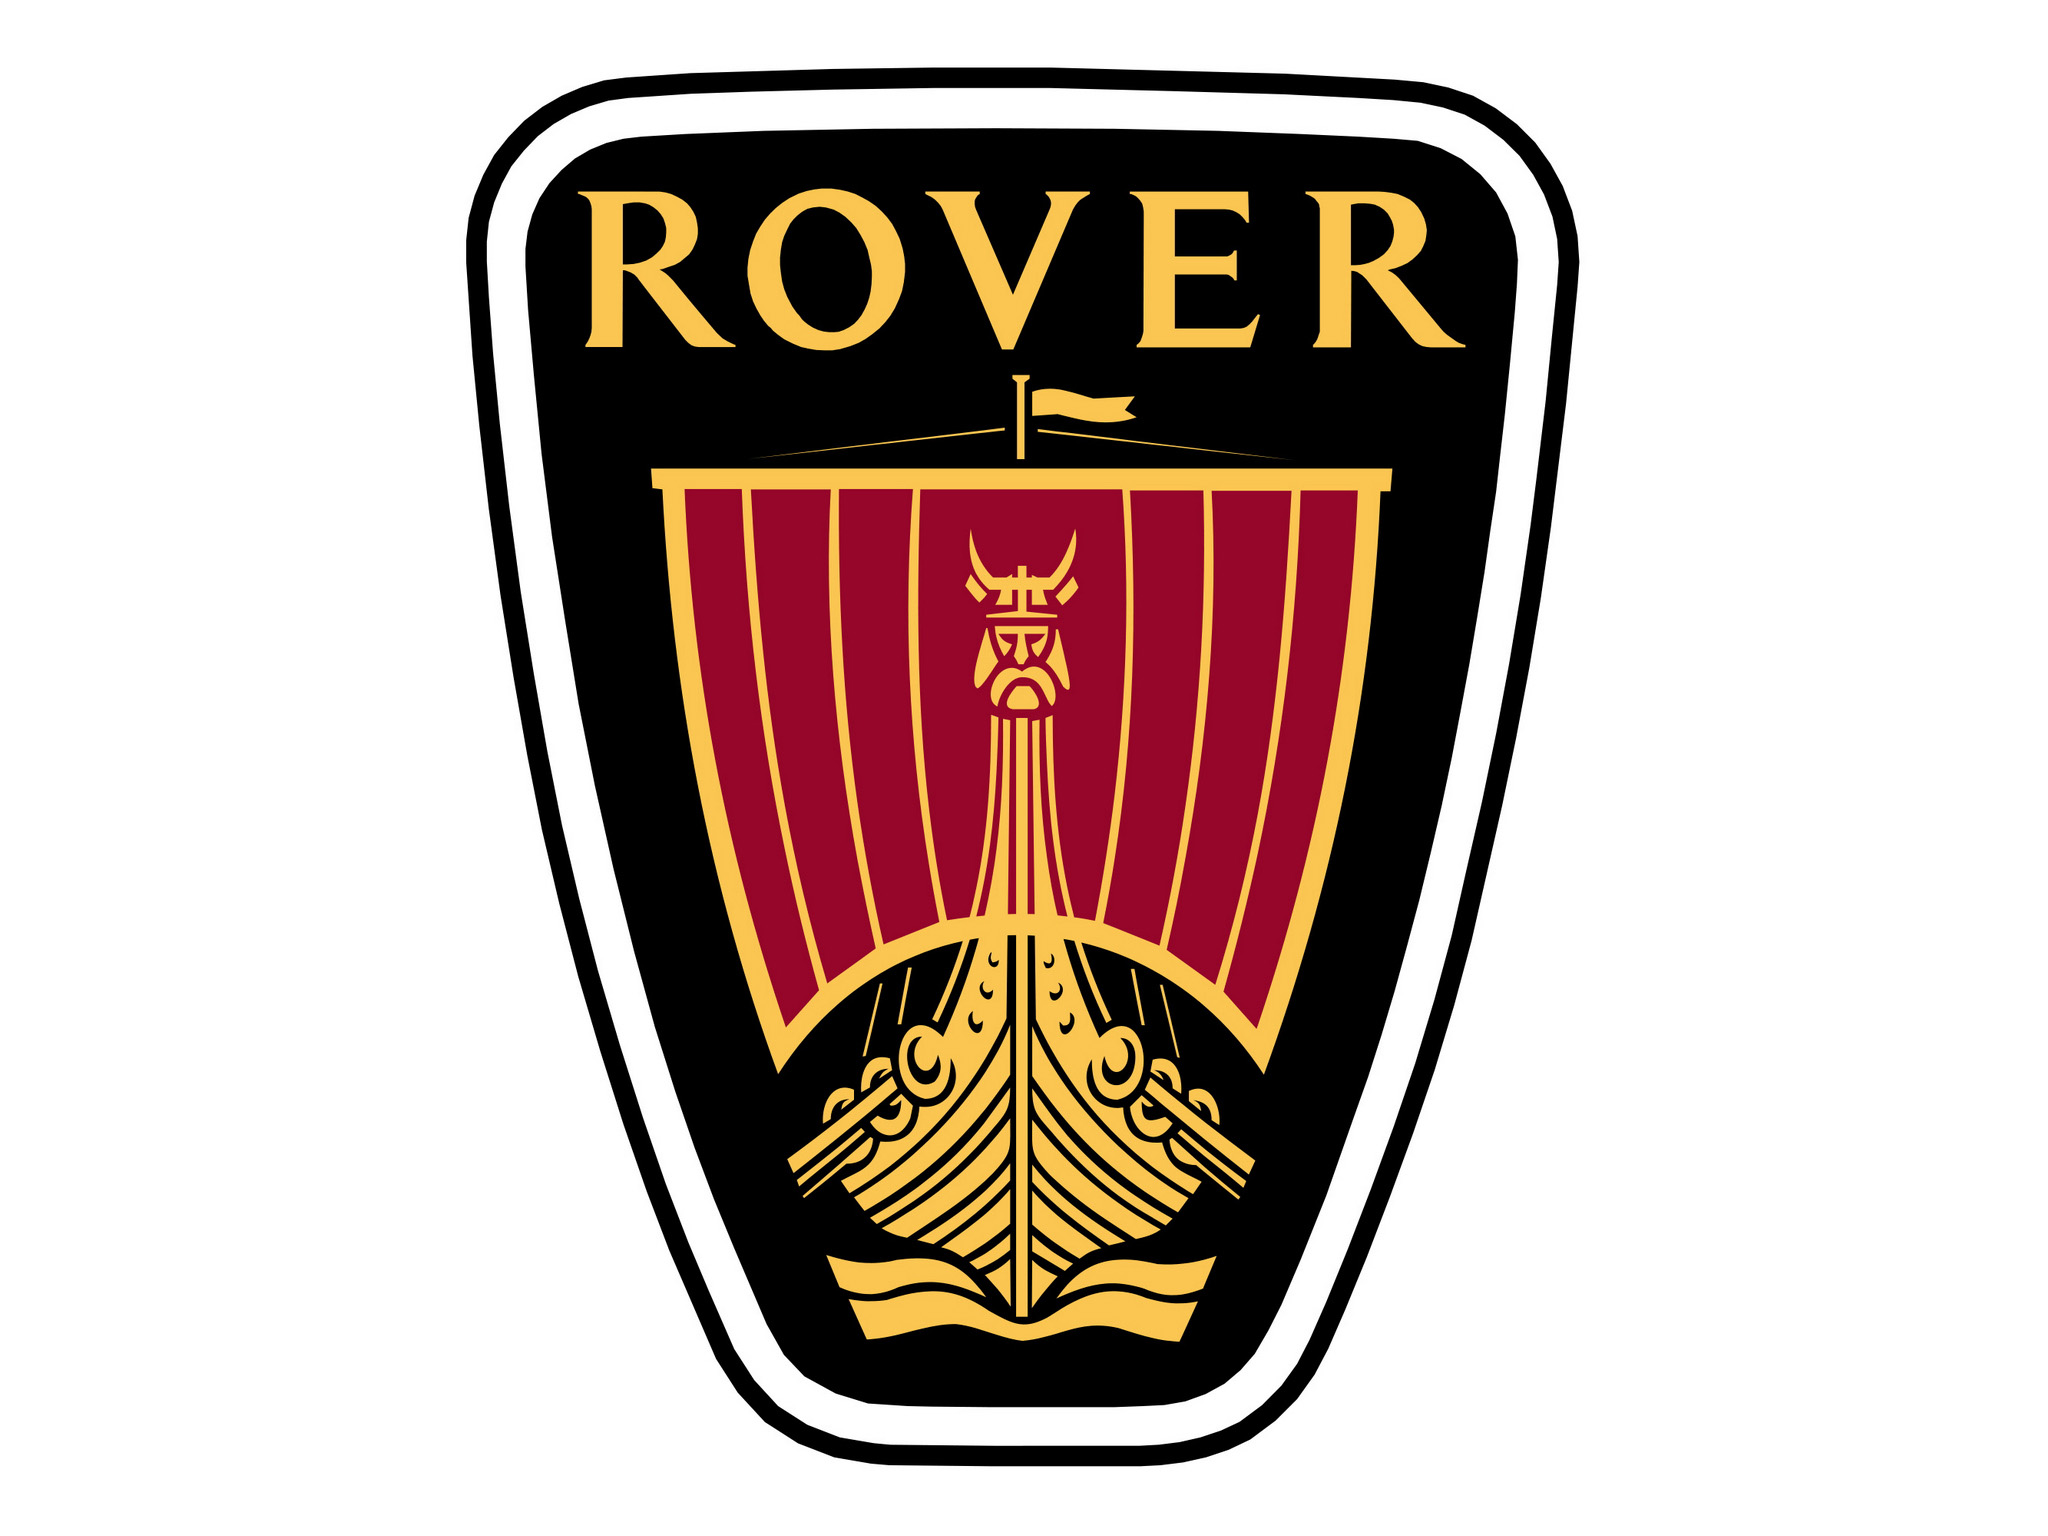 Rover Logo Rover Car Symbol Meaning And History